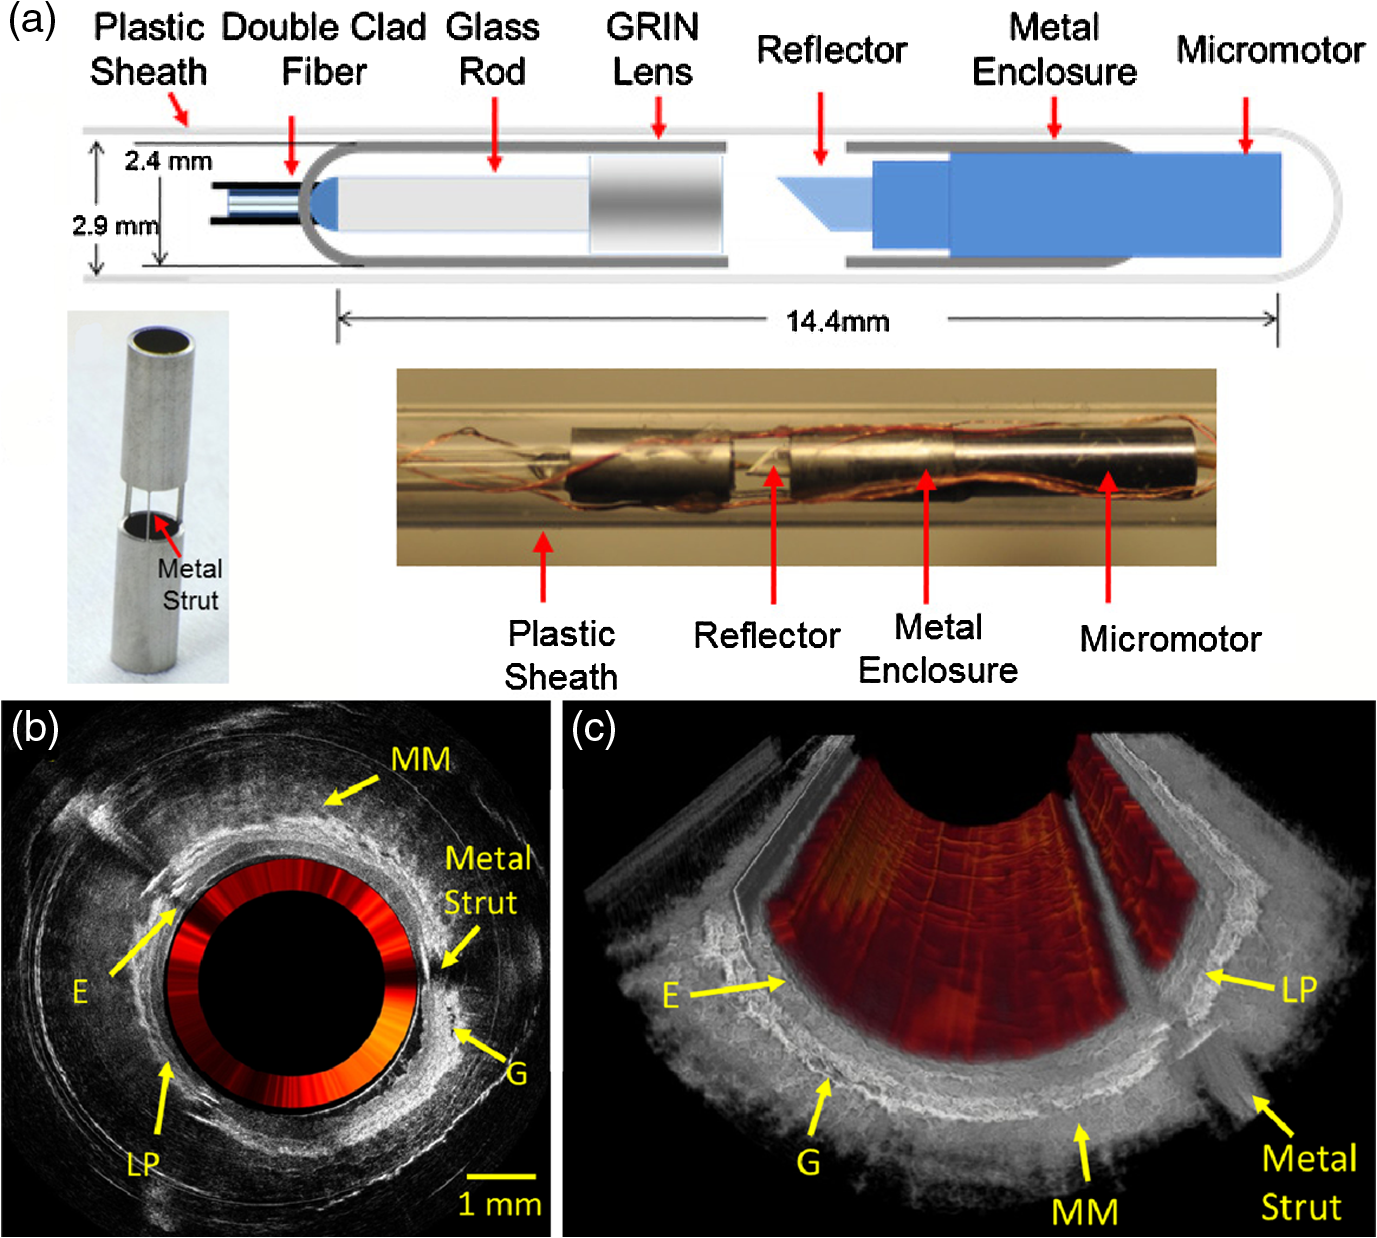 Clinical Translation Of Handheld Optical Coherence Tomography Fiber Optics Diagram Diffusive Belts The Normal Layered Structures Esophagus Can Be Clearly Visualized Including Epithelium E Lamina Propria Lp Muscularis Mucosa Mm